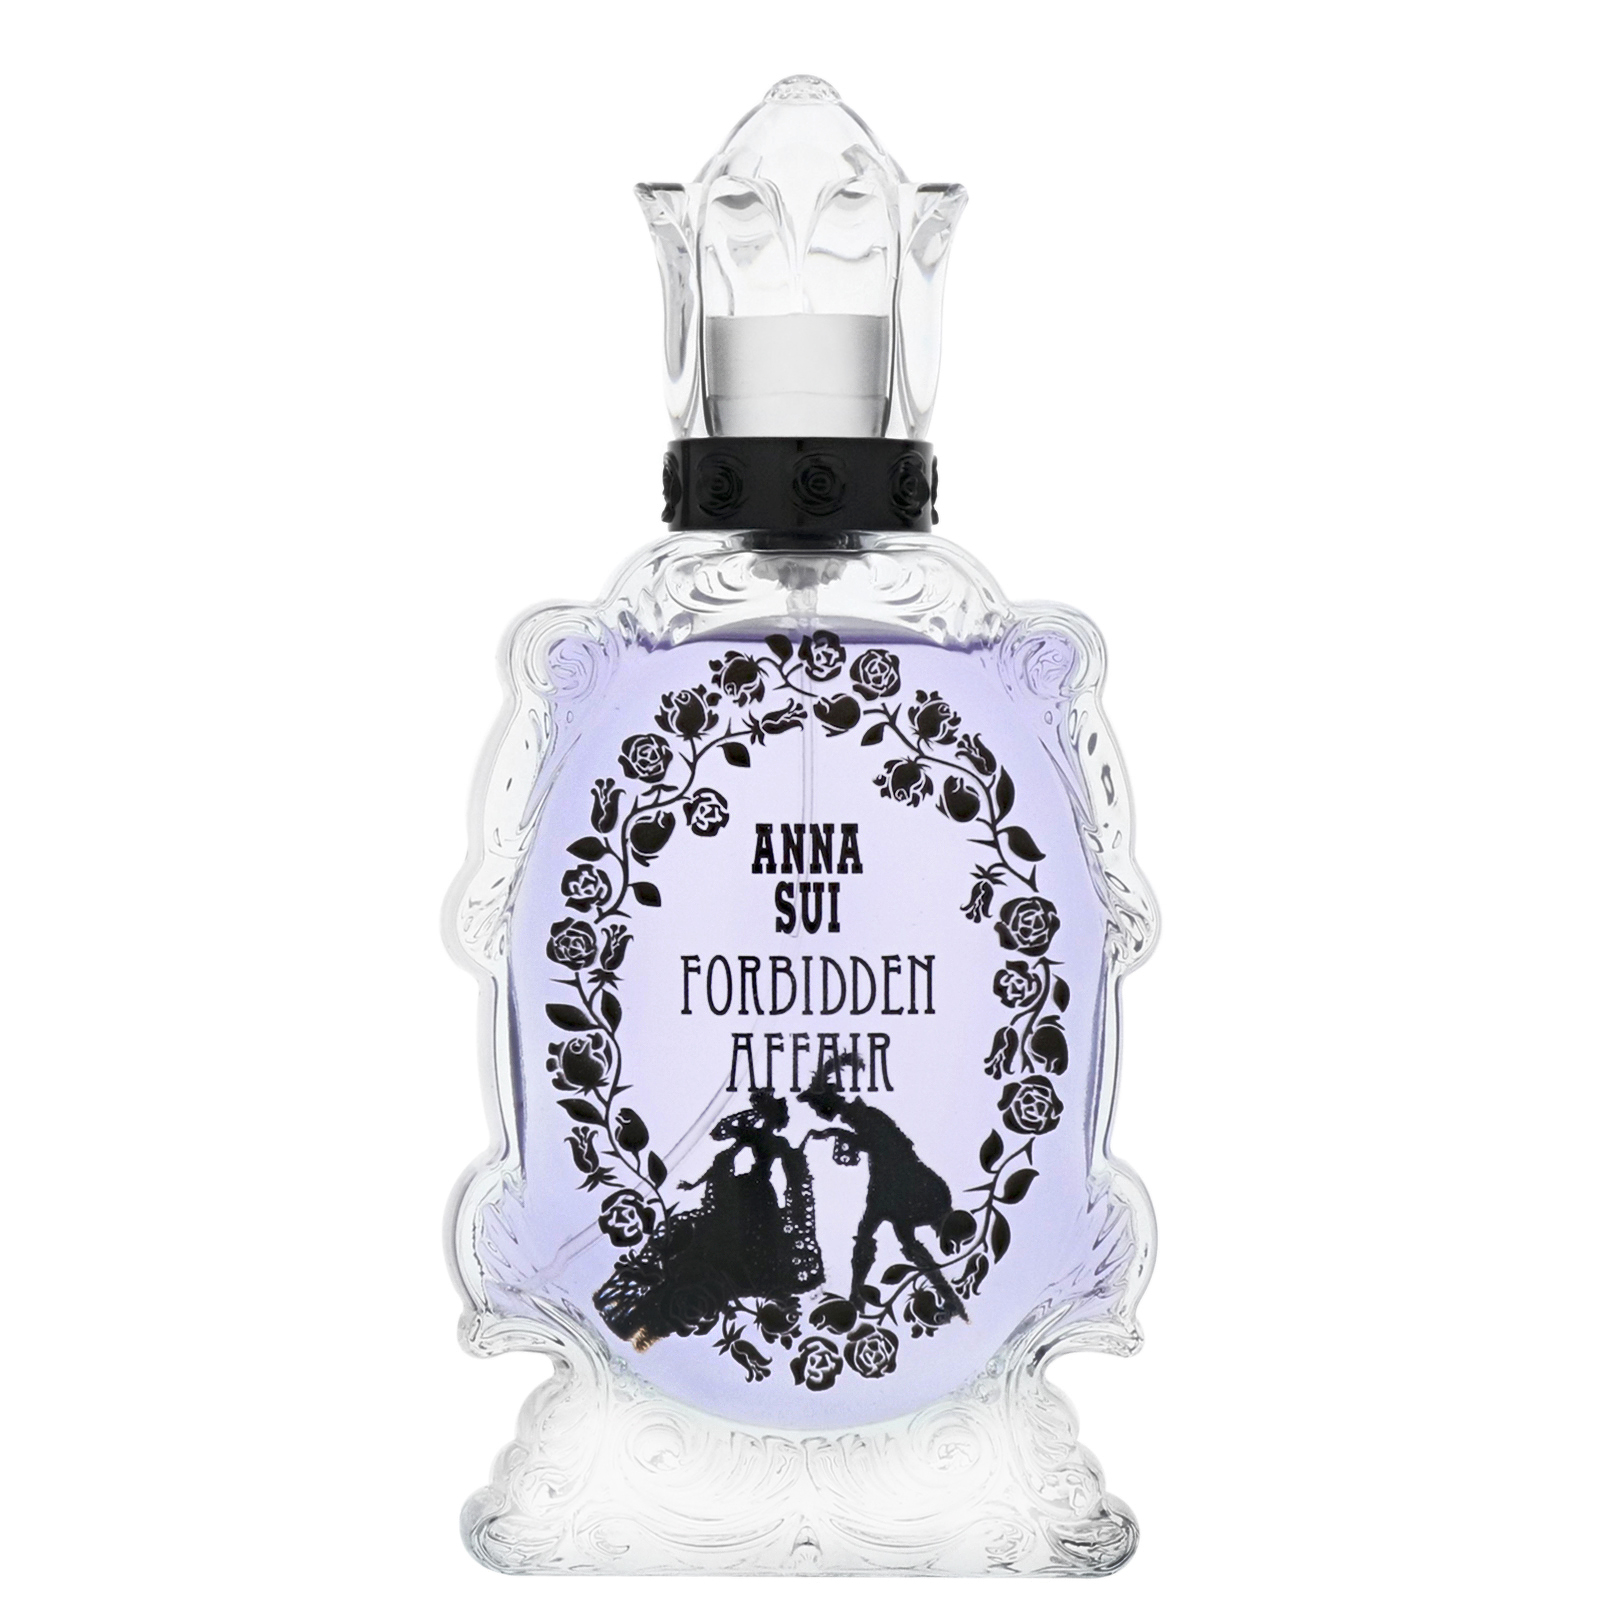 Anna Sui Forbidden Affair Eau de Toilette Spray 75ml